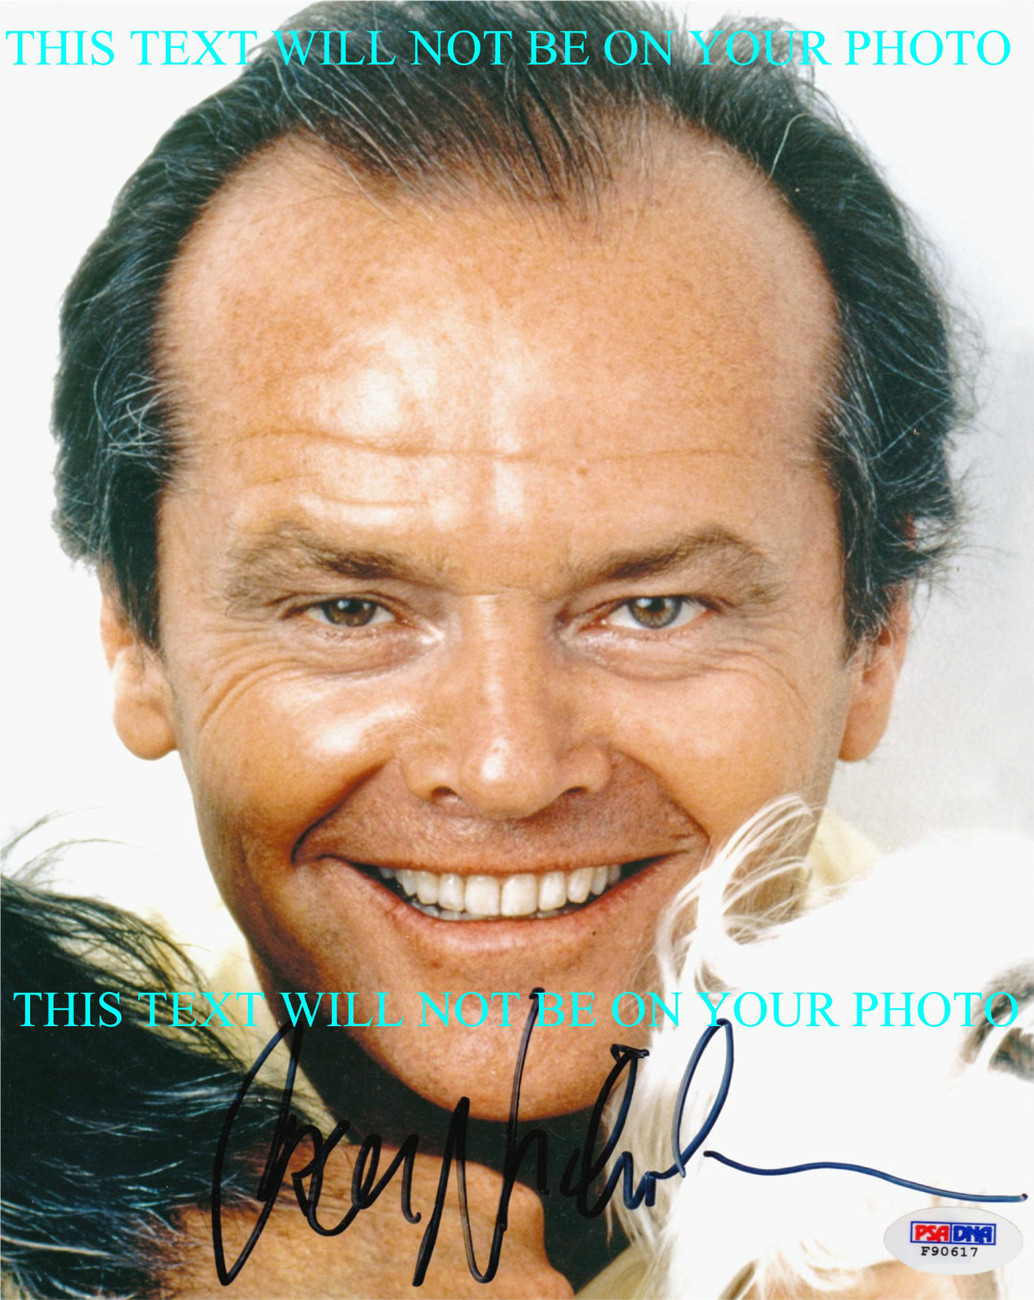 Primary image for JACK NICHOLSON AUTOGRAPHED 8x10 RP PHOTO CLOSE UP GREAT SMILE THAT LOOK